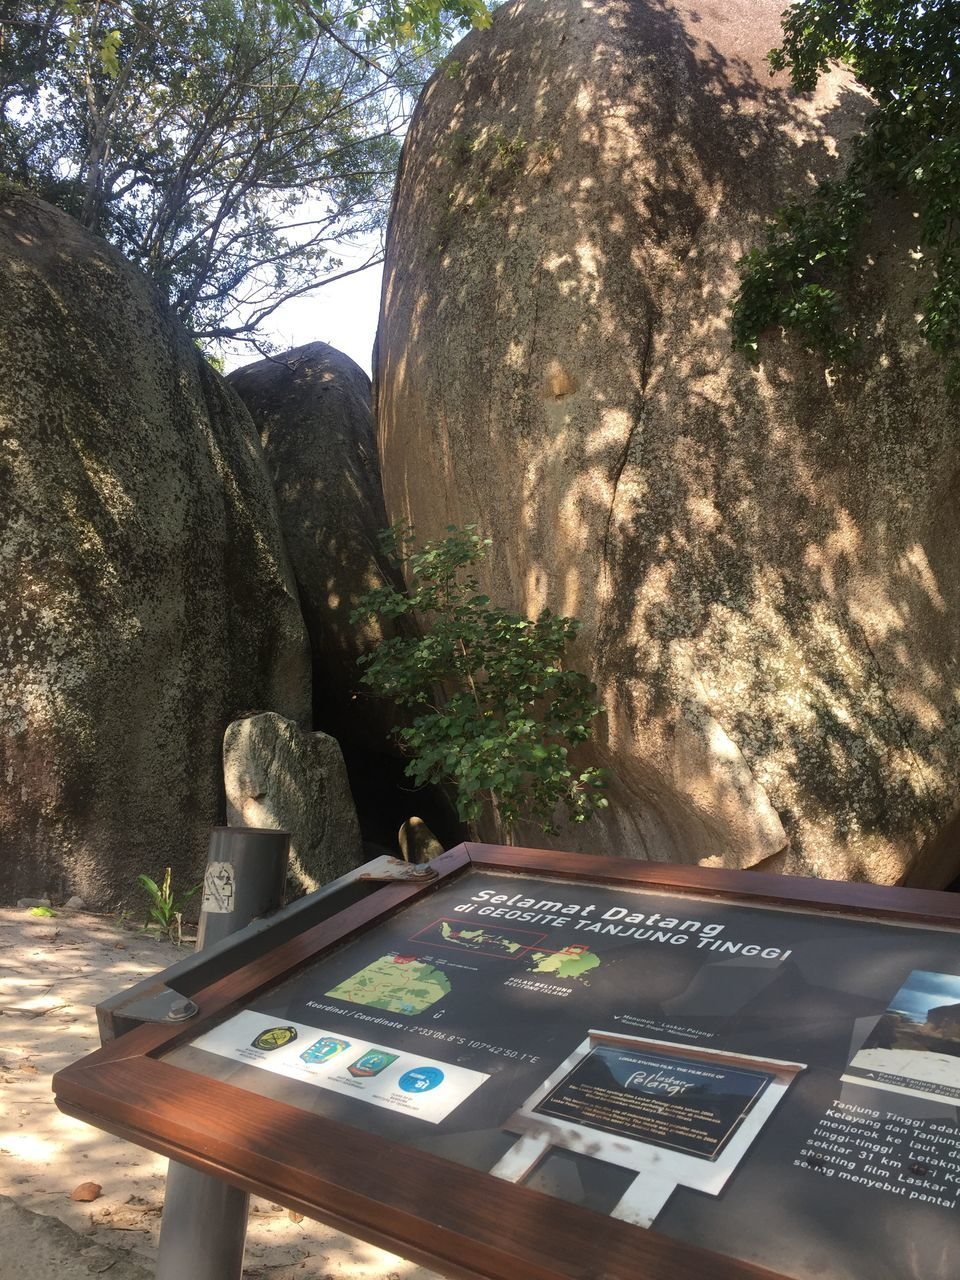 tree, plant, no people, nature, day, solid, rock - object, rock, technology, table, sunlight, art and craft, communication, outdoors, wireless technology, representation, close-up, human representation, tranquility, trunk